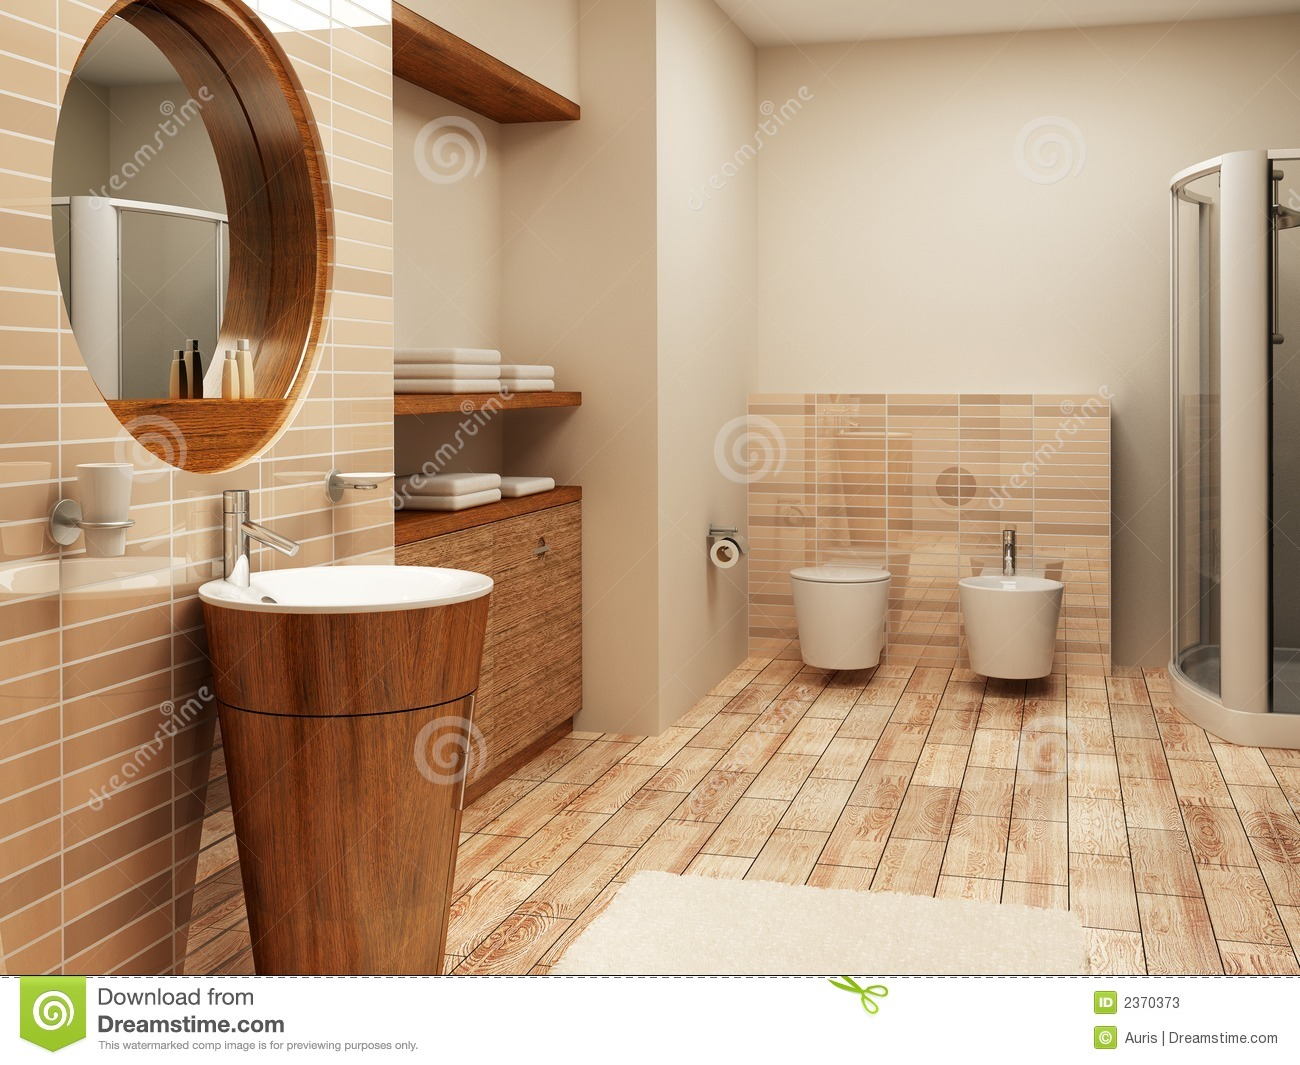 bathroom interior stock image. image of bidet, modern - 2370373